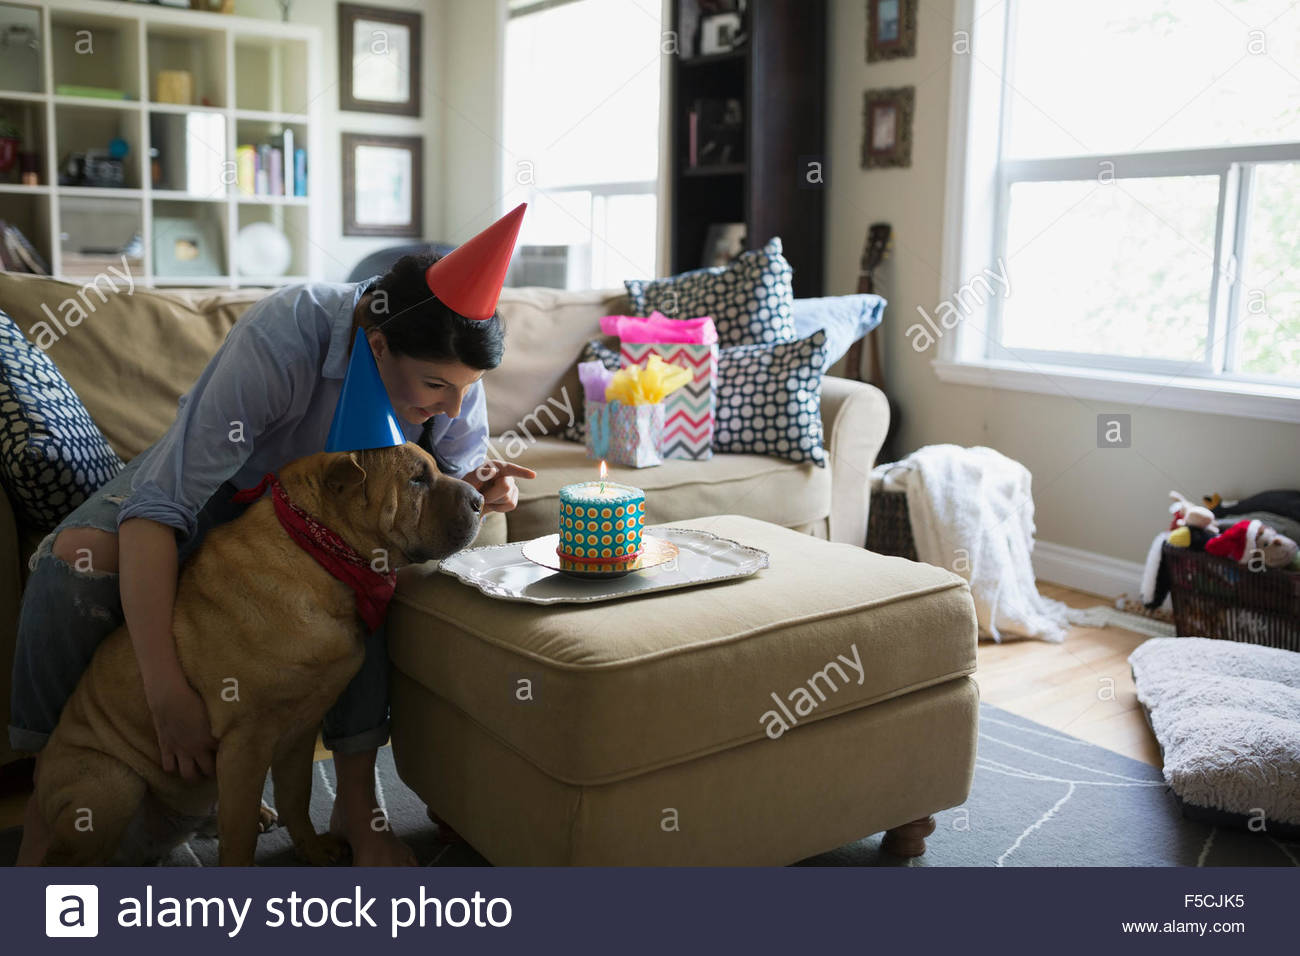 Woman and dog celebrating birthday with cake - Stock Image